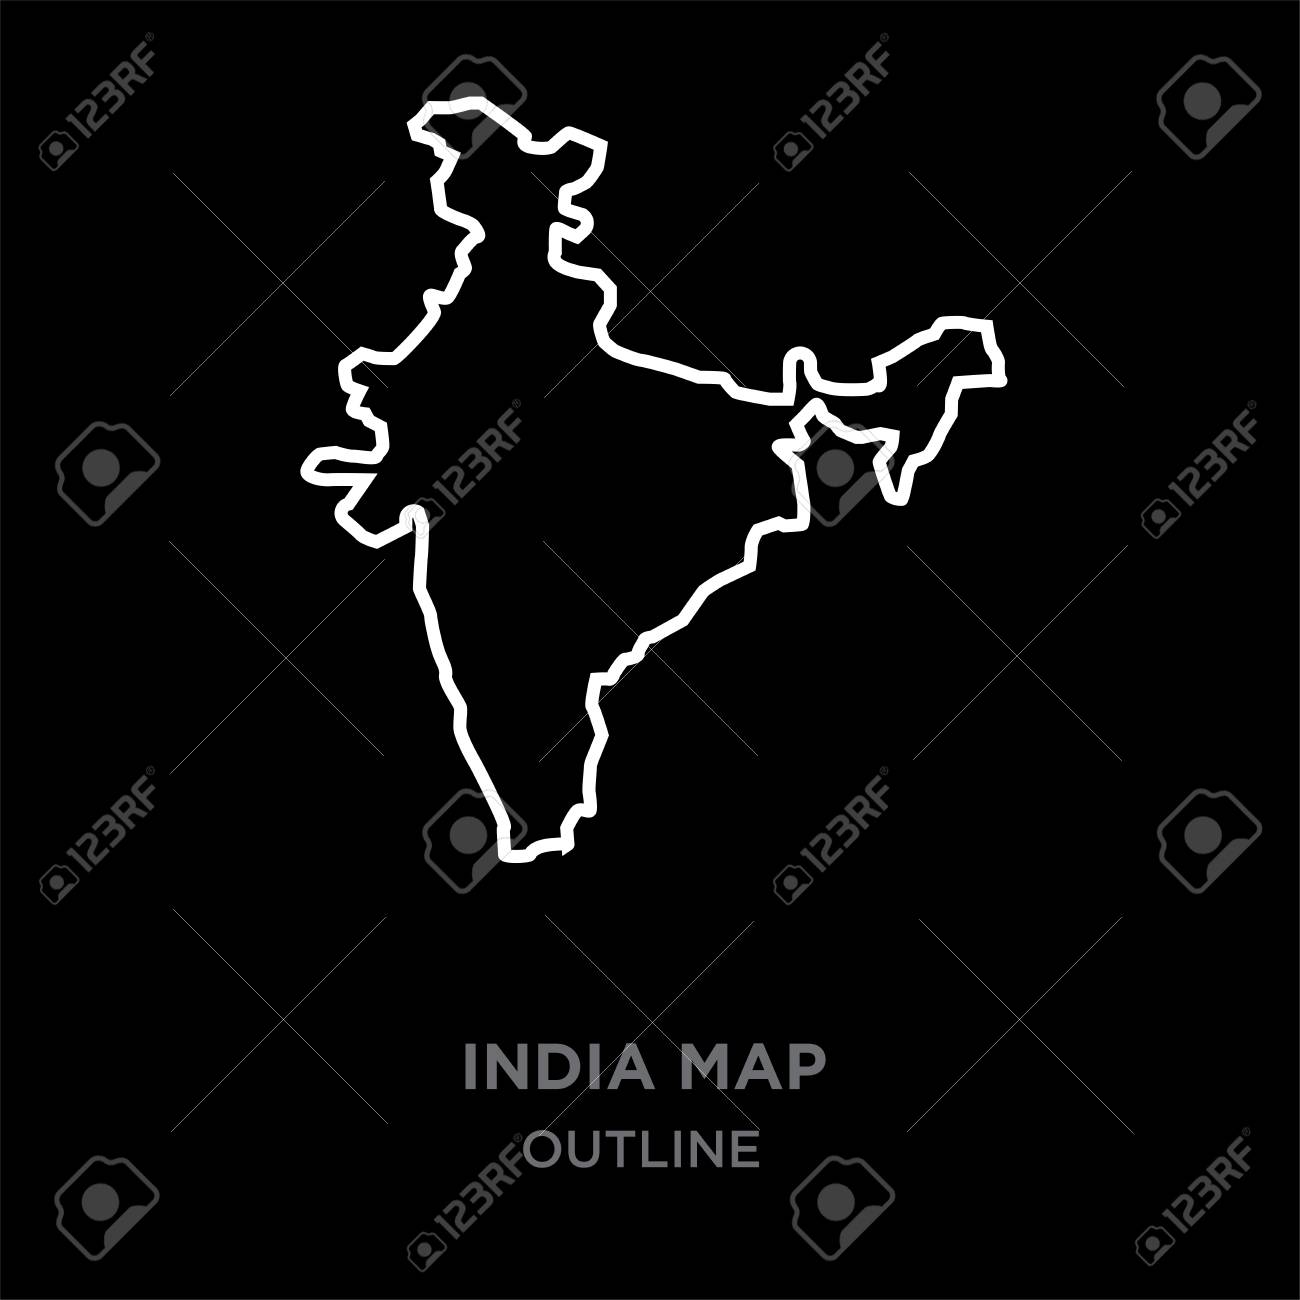 Outline India Map Clipart Black And White